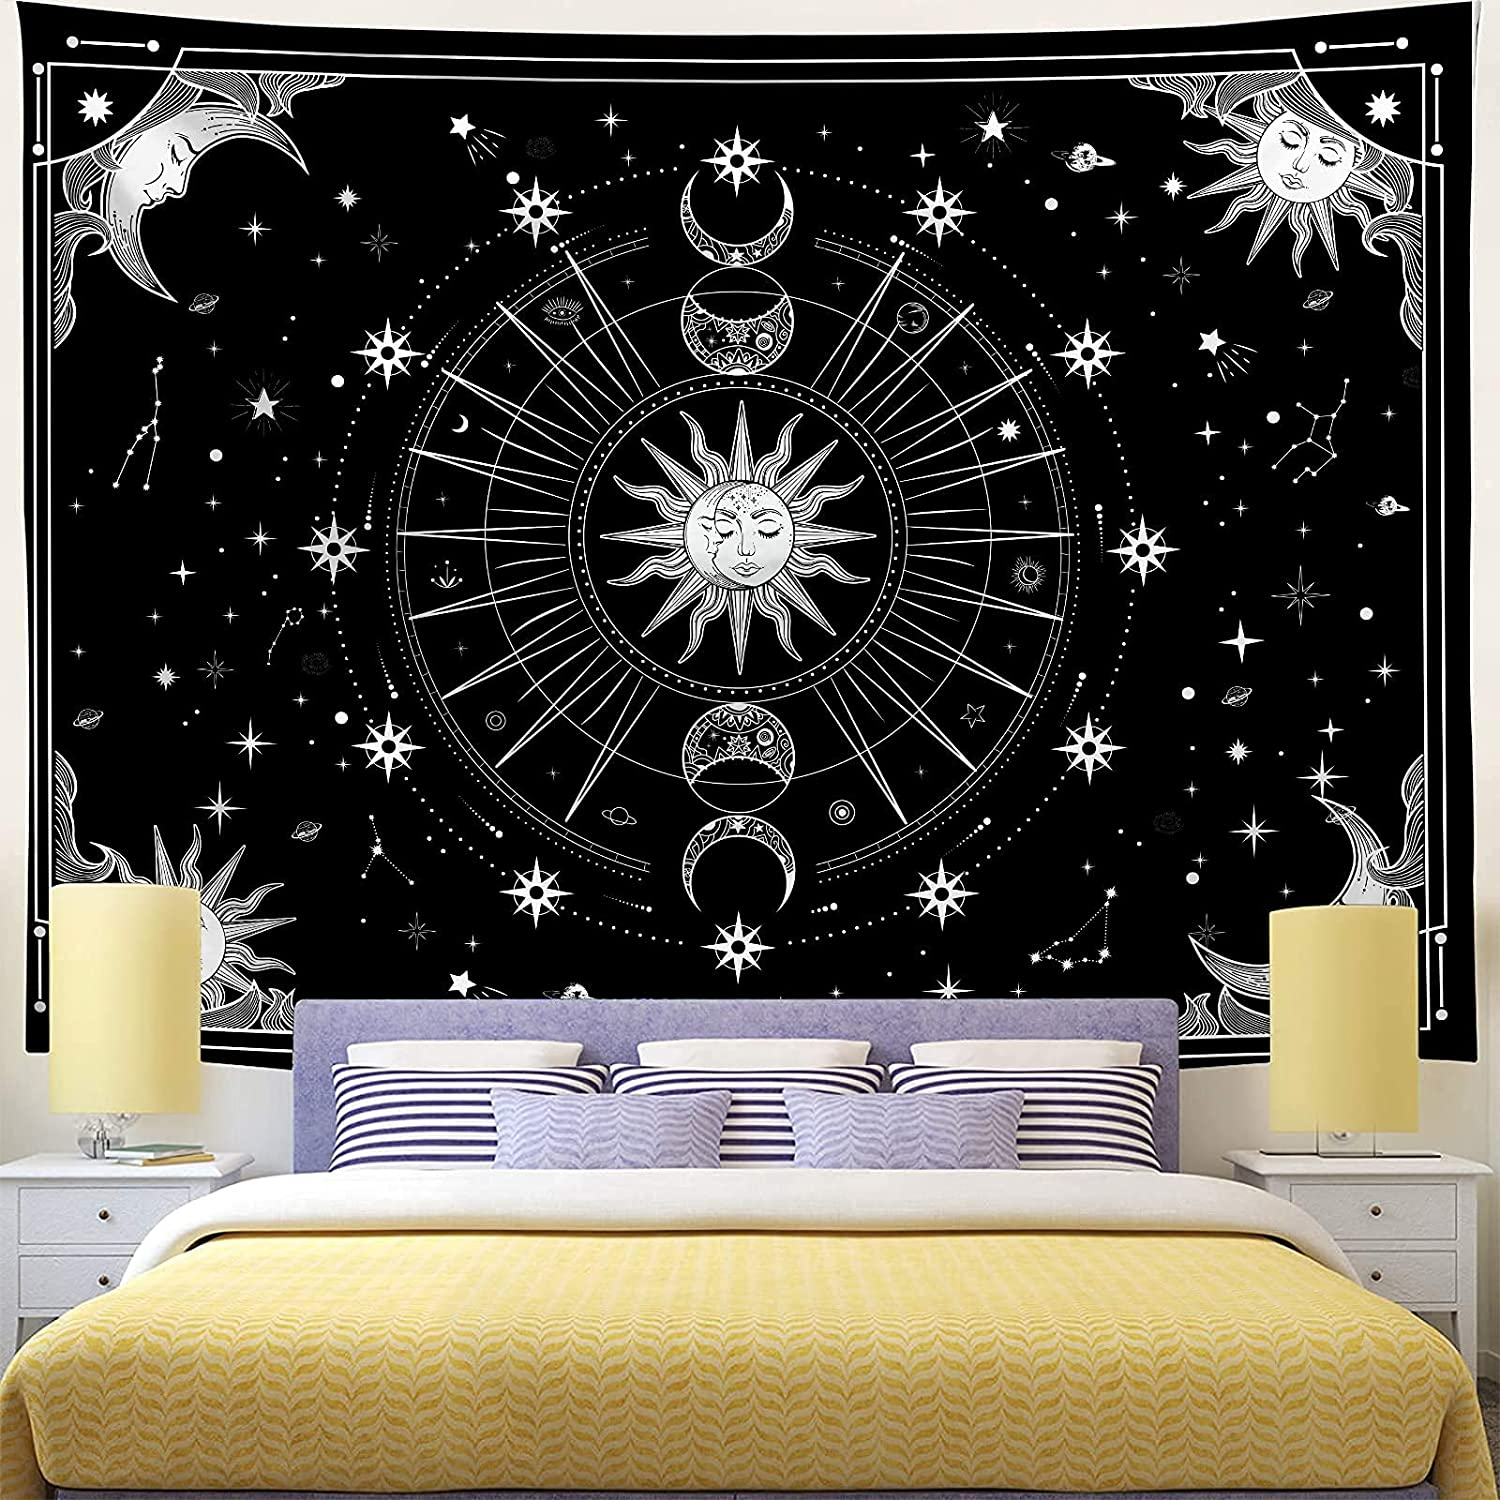 Bowavat Wall Tapestry , Sun and Moon Tapestry Psychedelic Black and White Tapestry Wall Hanging Tapestry Mystic Stars Space Tapestry for Bedroom Living Room Dorm Decor (H51.2